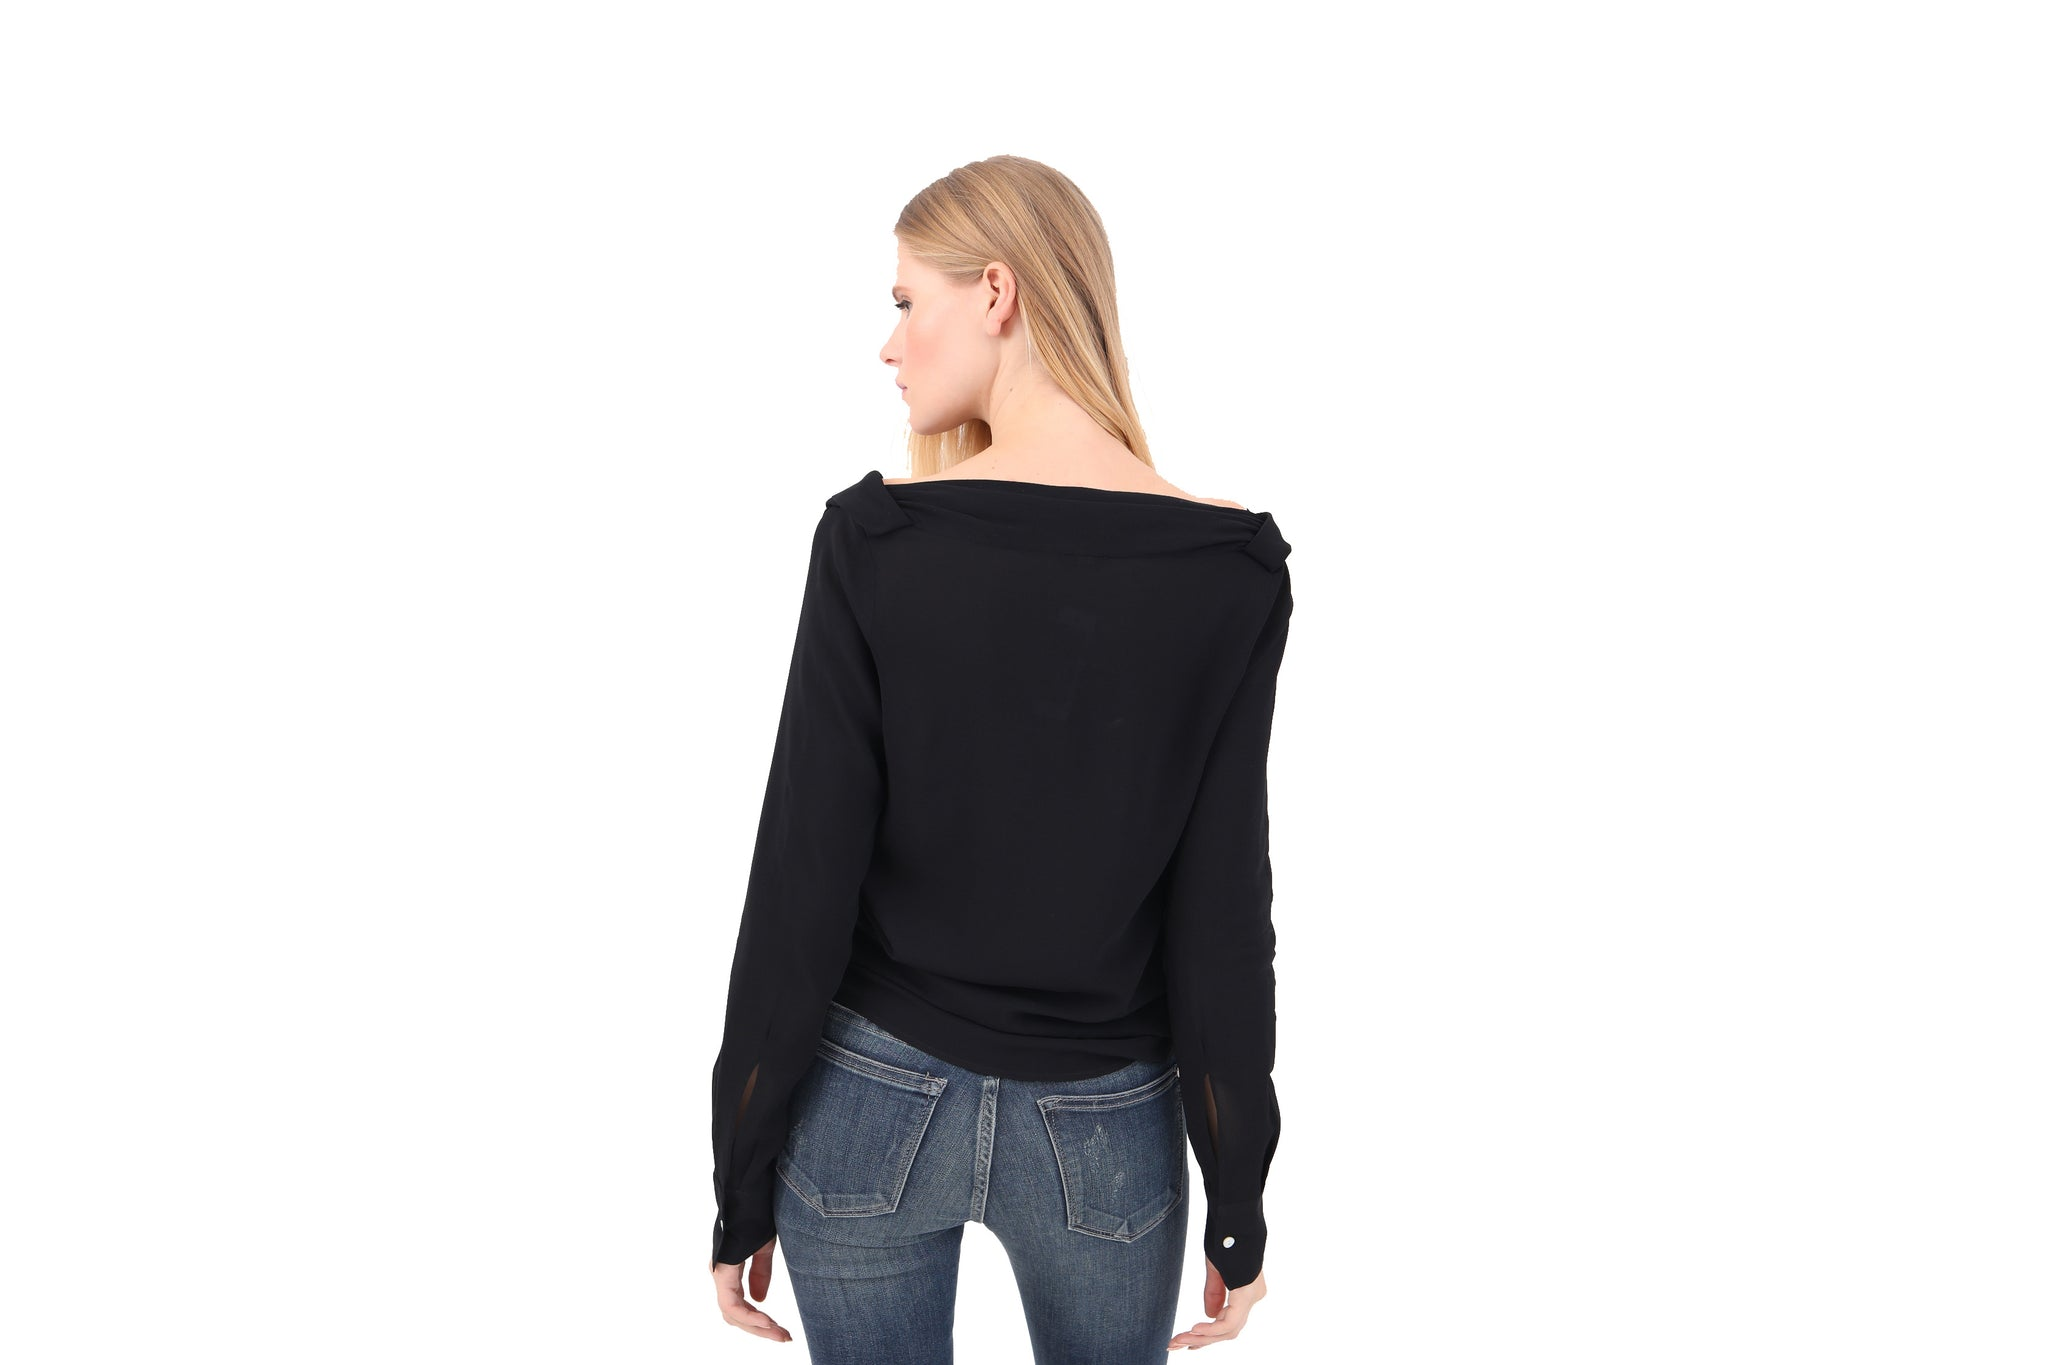 Twisted Neck Italian Blouse